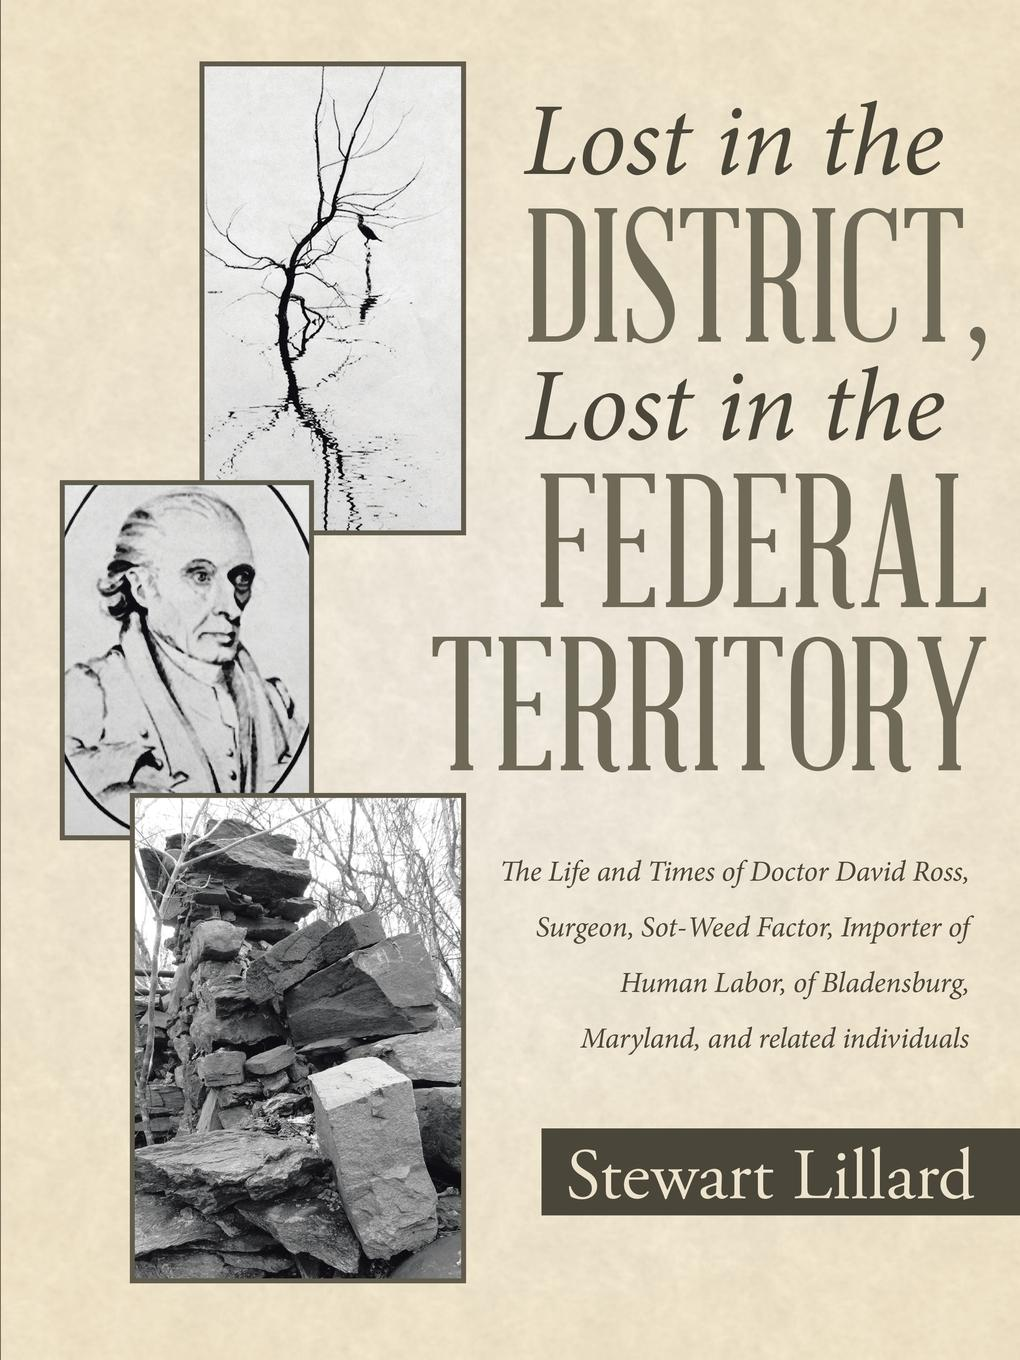 Stewart Lillard Lost in the District, Lost in the Federal Territory. The Life and Times of Doctor David Ross, Surgeon, Sot-Weed Factor, Importer of Human Labor, of Bladensburg, Maryland, and related individuals